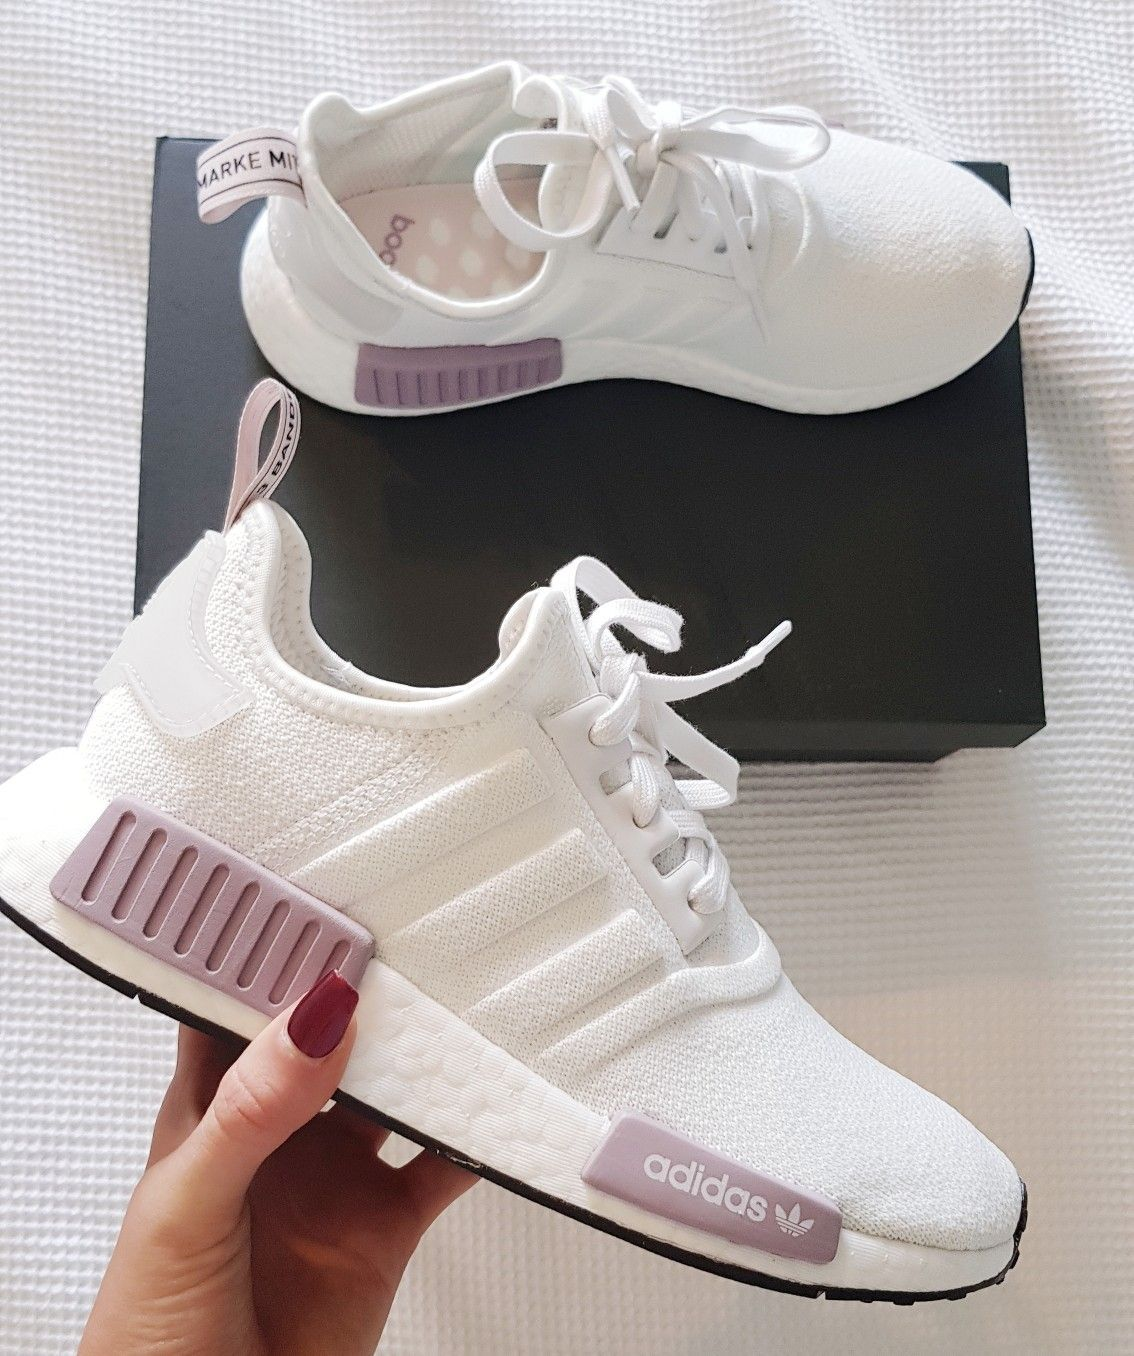 0c99402f6 womens running shoes trainers NMD r1 white and purple pink adidas shoes   women snmd r1shoes